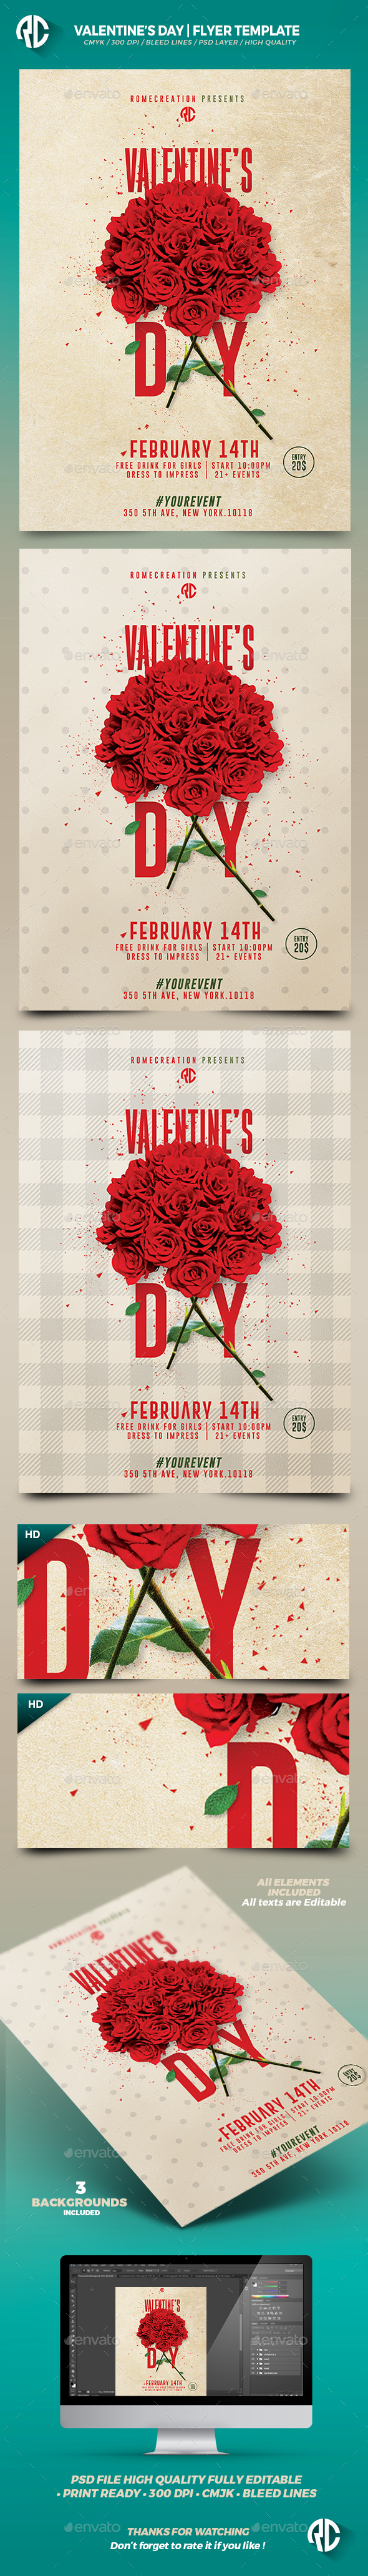 Valentine's Day | Psd Print Template  - Flyers Print Templates